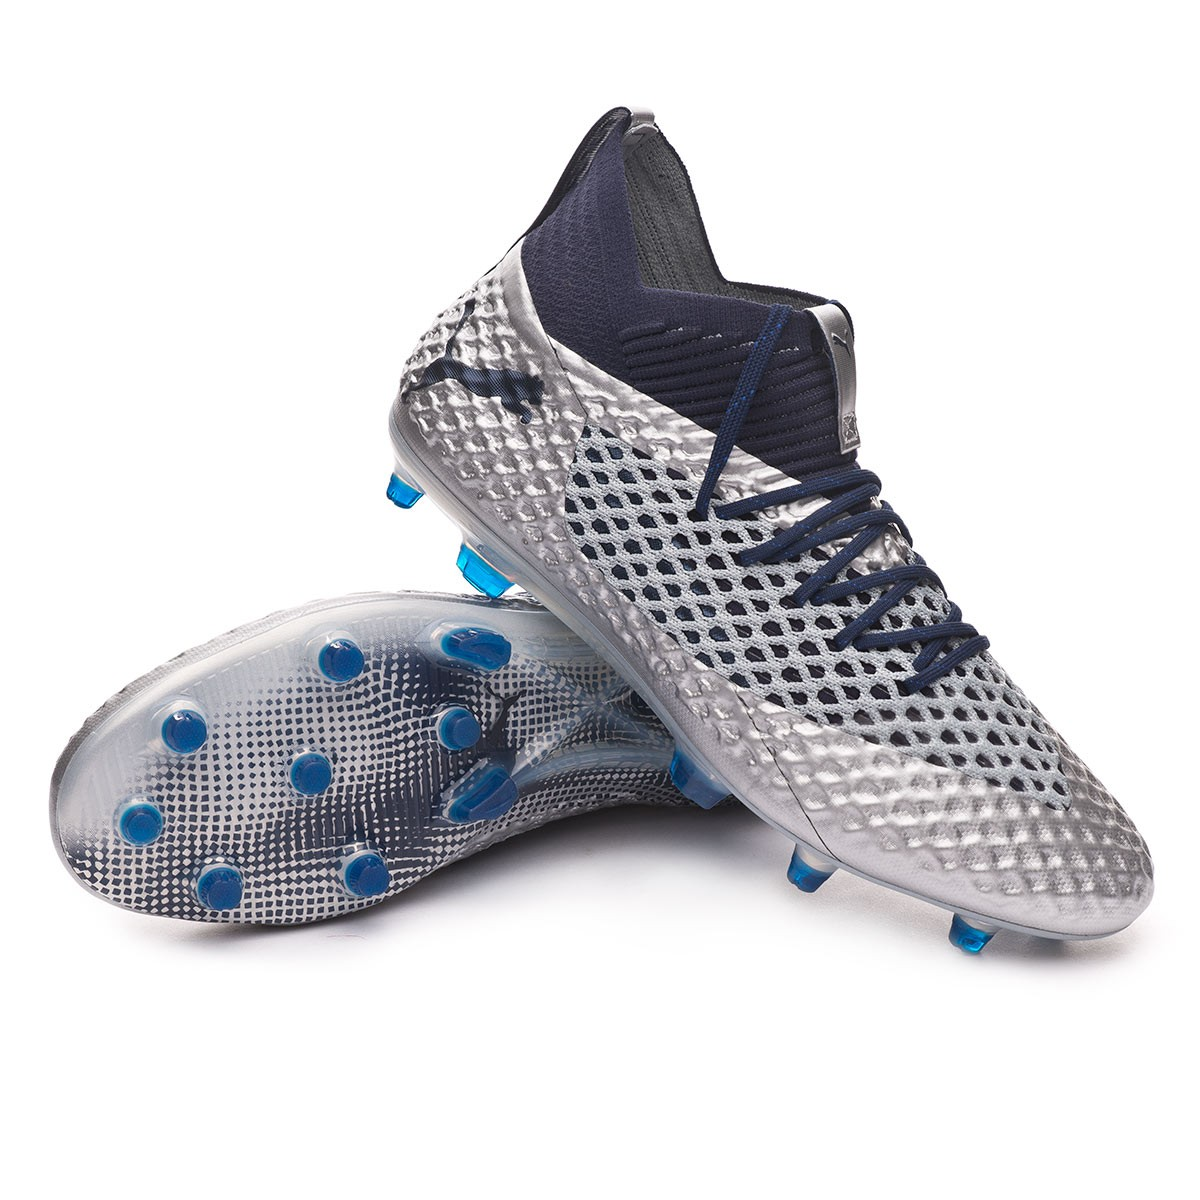 98f57b1001e Boot Puma Future 2.1 Netfit FG AG Puma Silver-Peacoat - Football ...